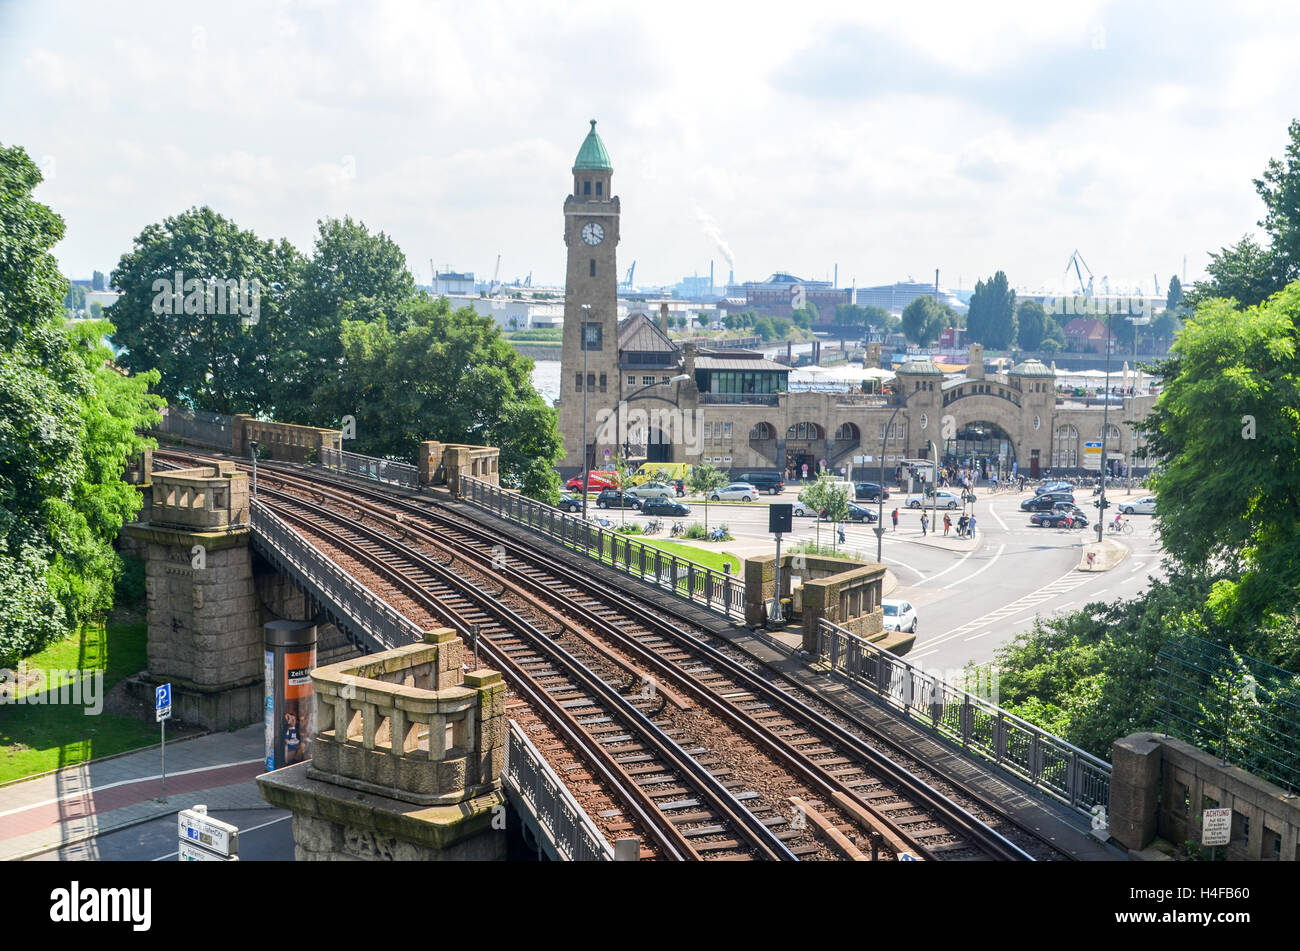 Mobility in Germany: Road, railway and pier of Landungsbrücken in Hamburg - Stock Image